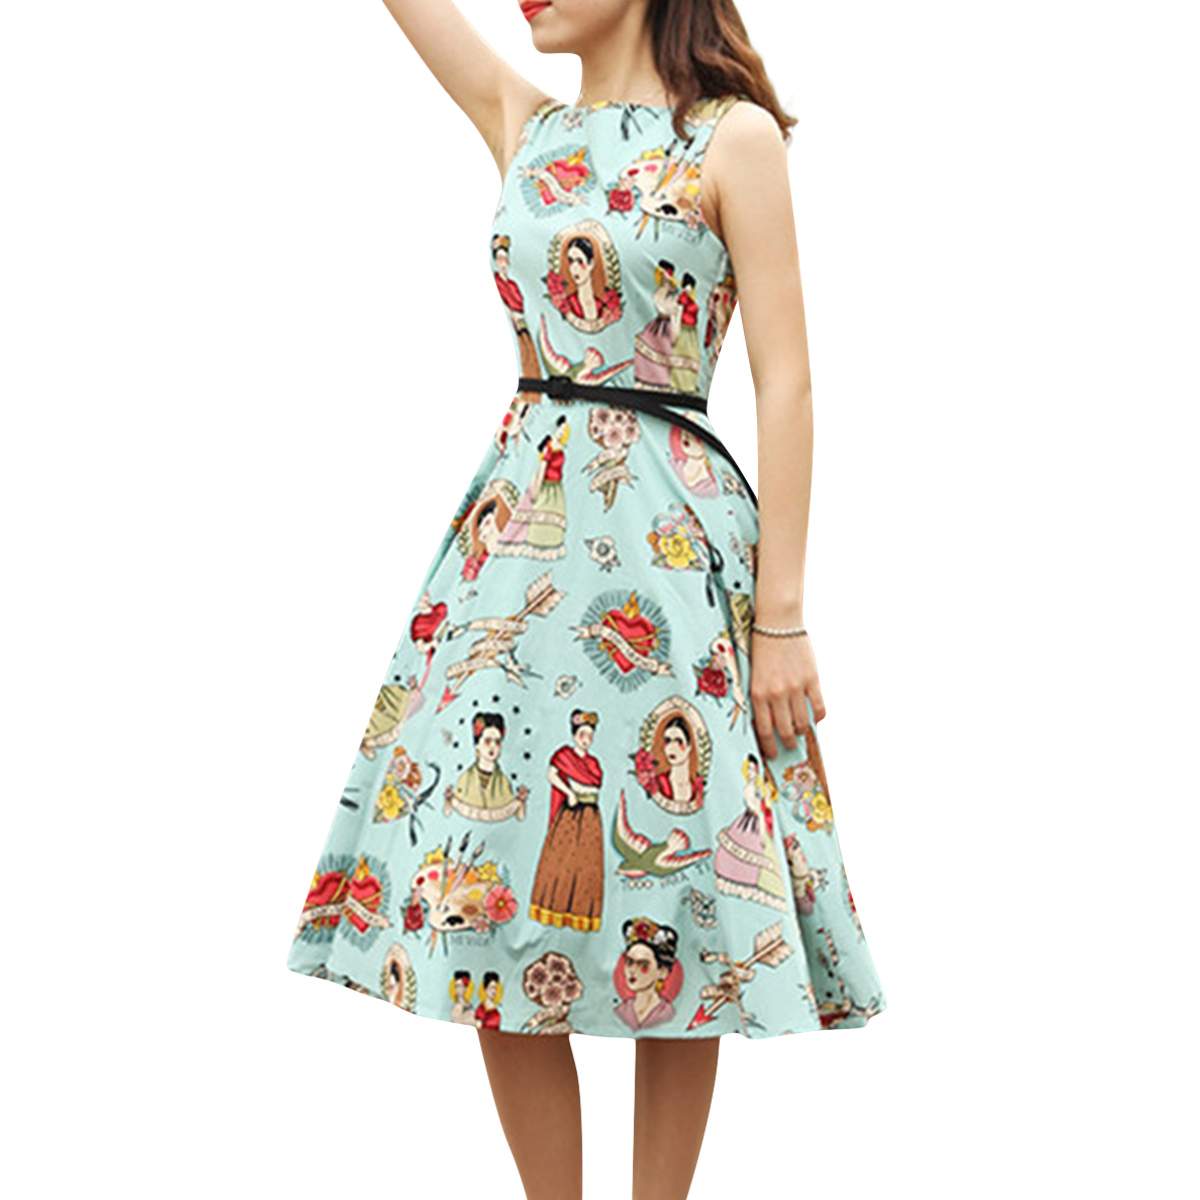 Women Frida Kahlo Sleeveless A-line Vintage Party Cocktail Swing Dress With Belt